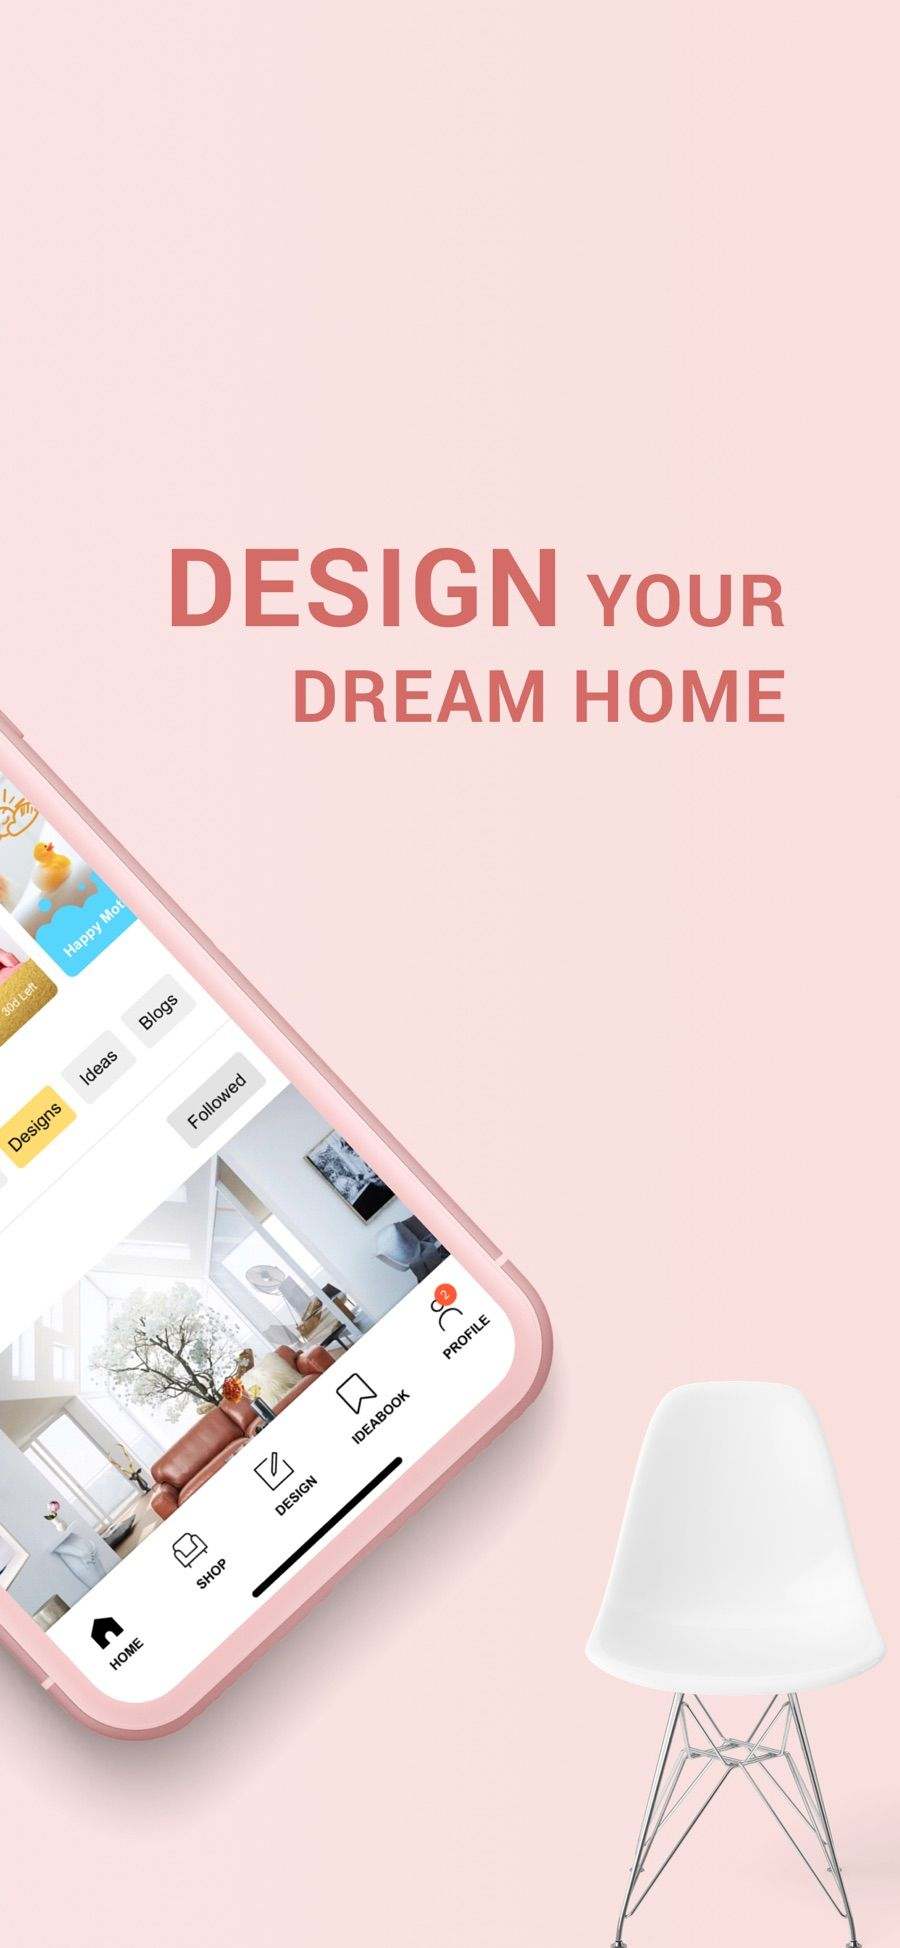 App To Design Your Room: ‎Decor Matters: Design & Shop On The App Store